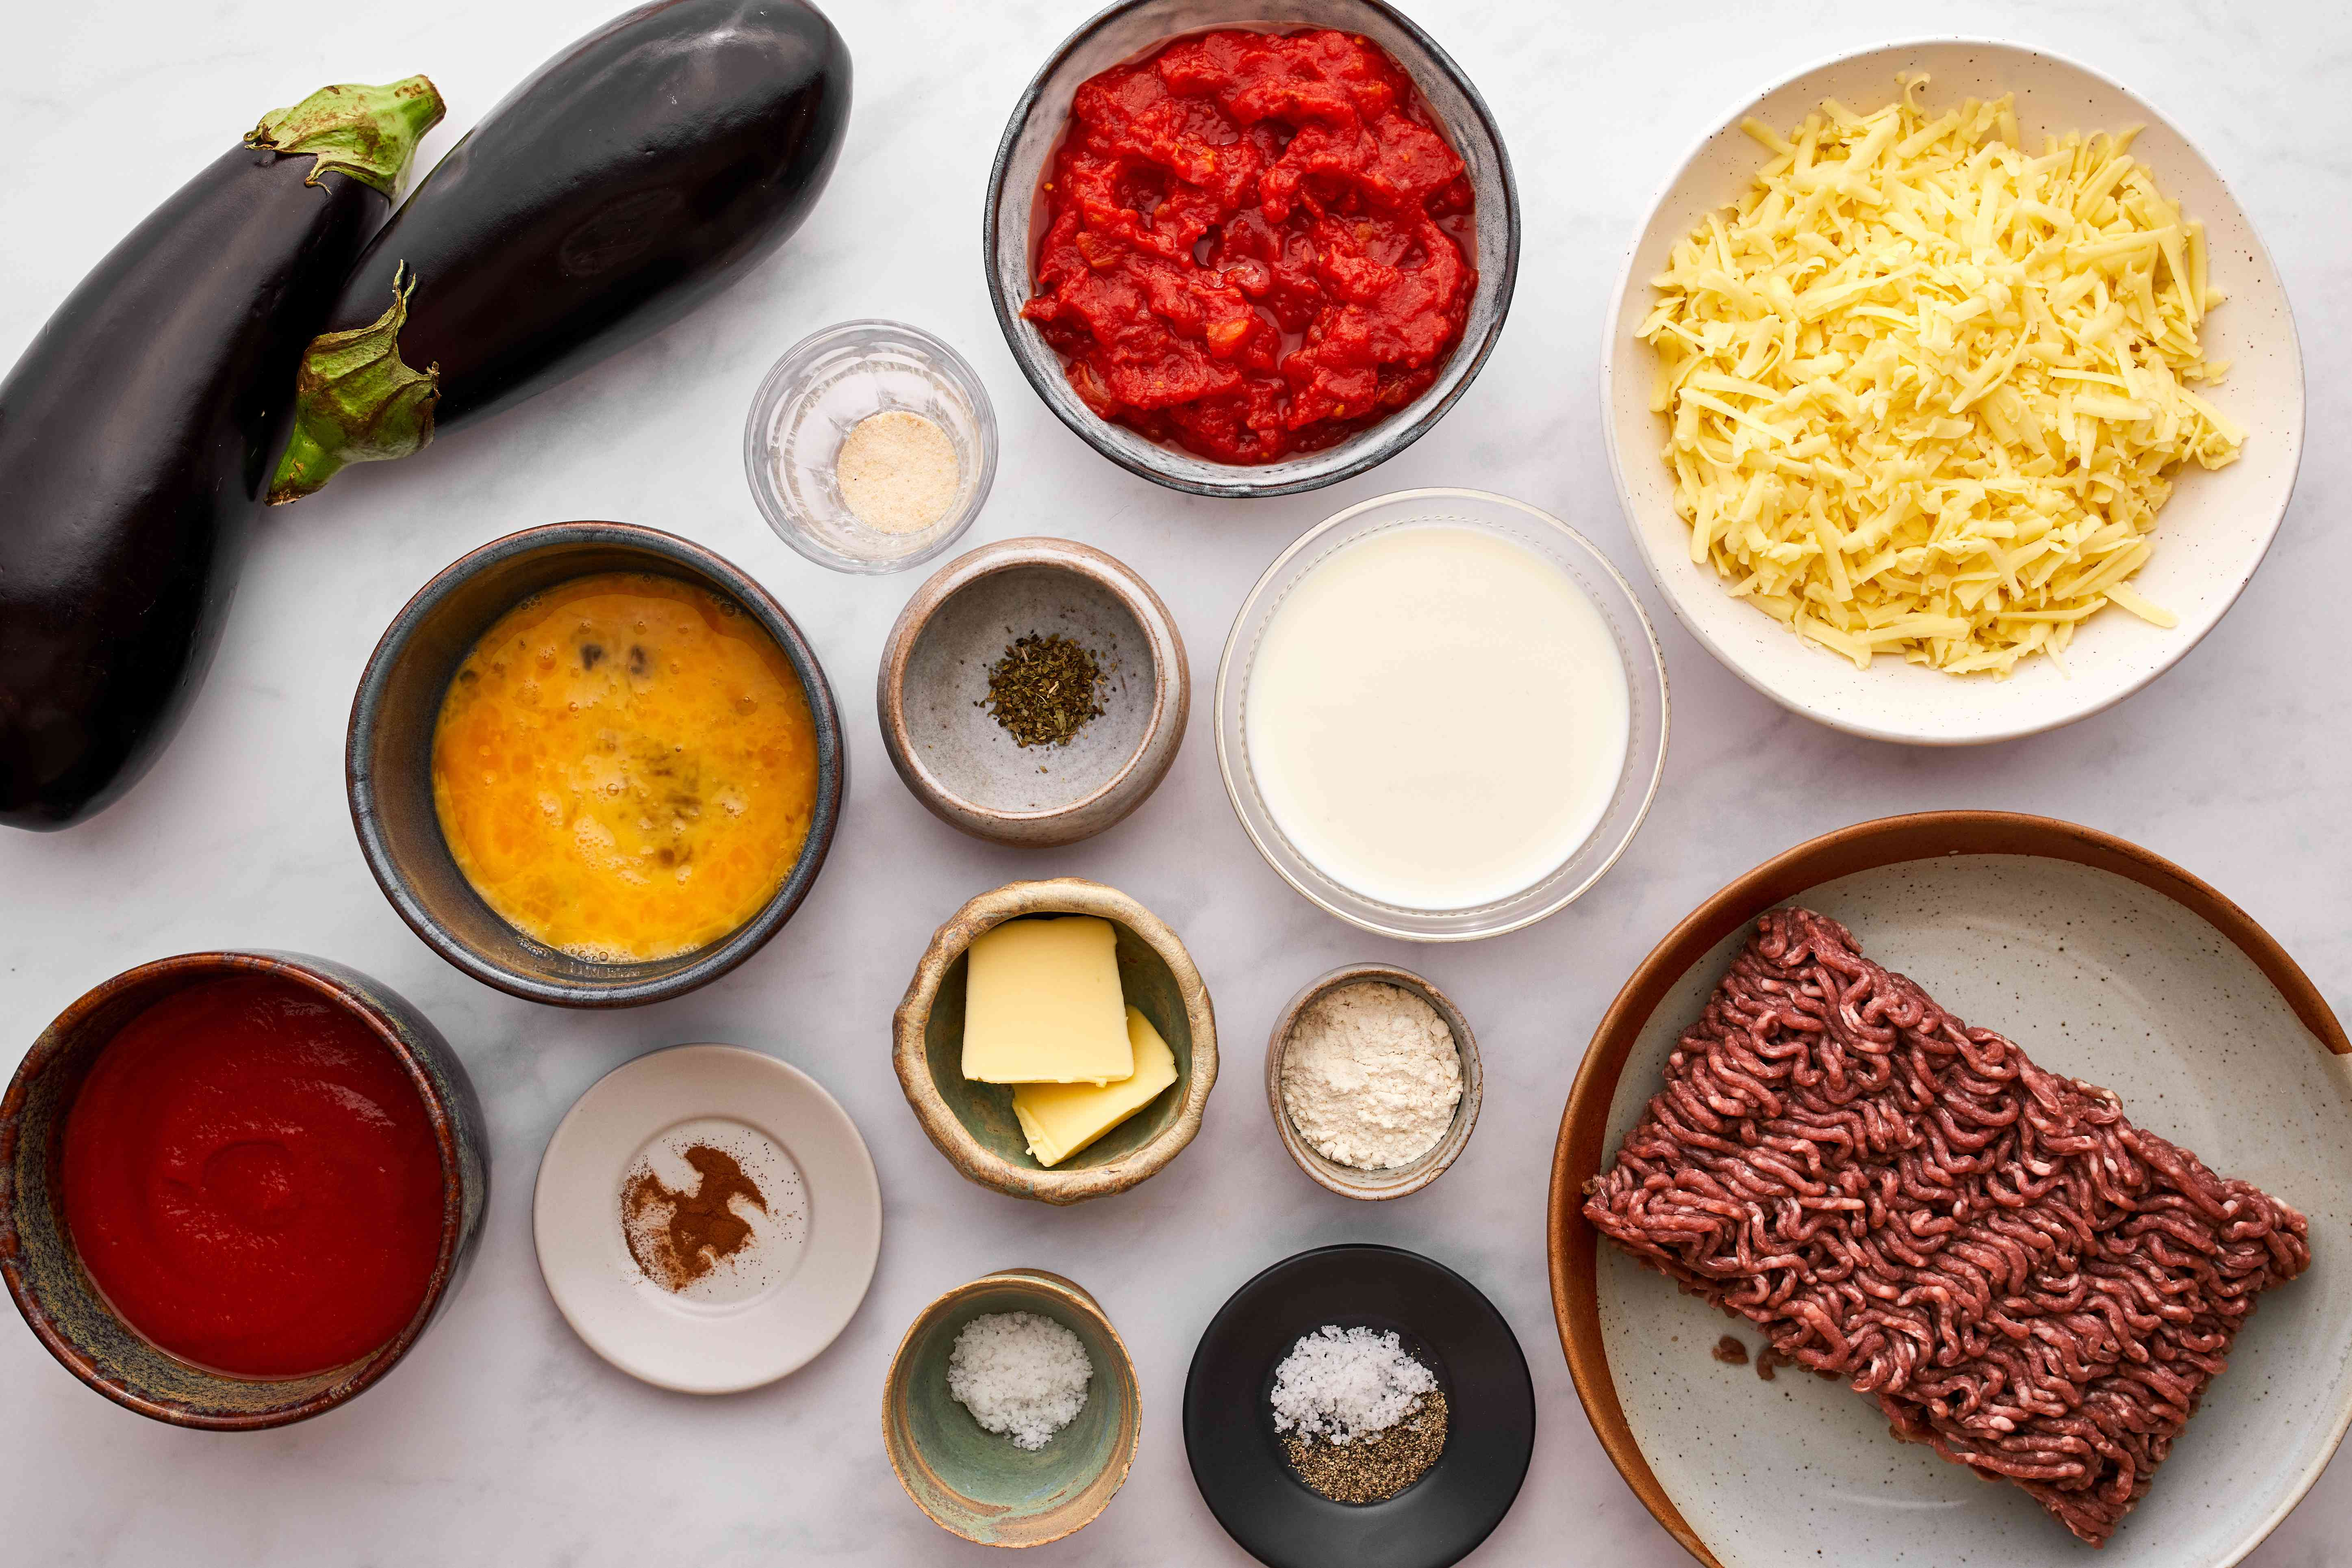 Moussaka - Eggplant With Ground Beef (or Lamb) and Cheese ingredients